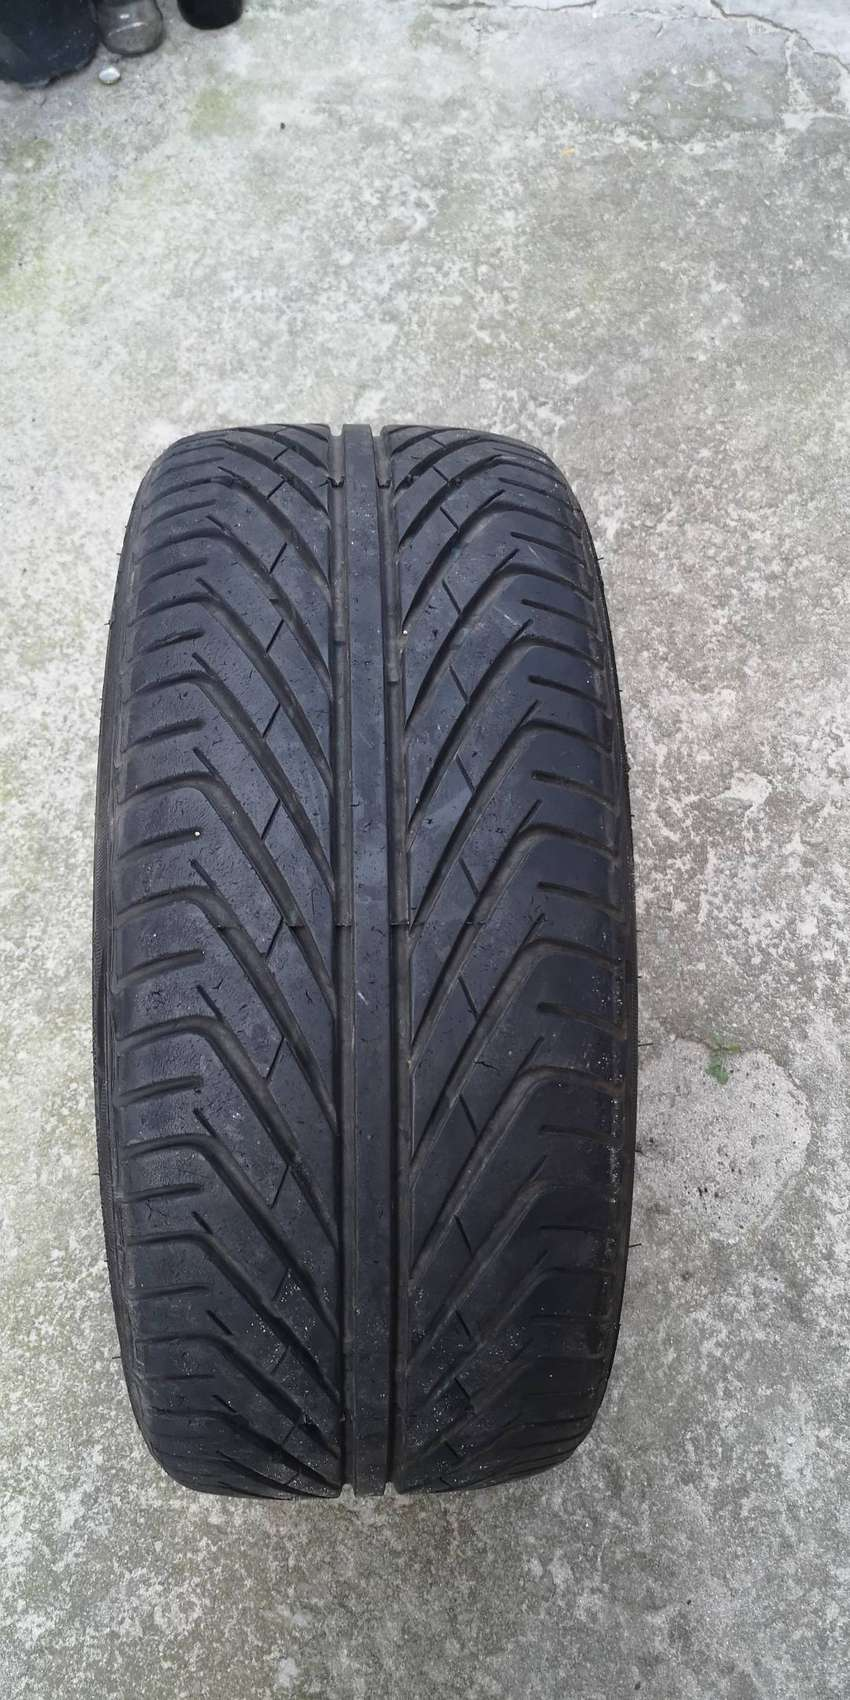 18 inch tyre 215/35ZR18 for sale or swop for 215/45R17 0